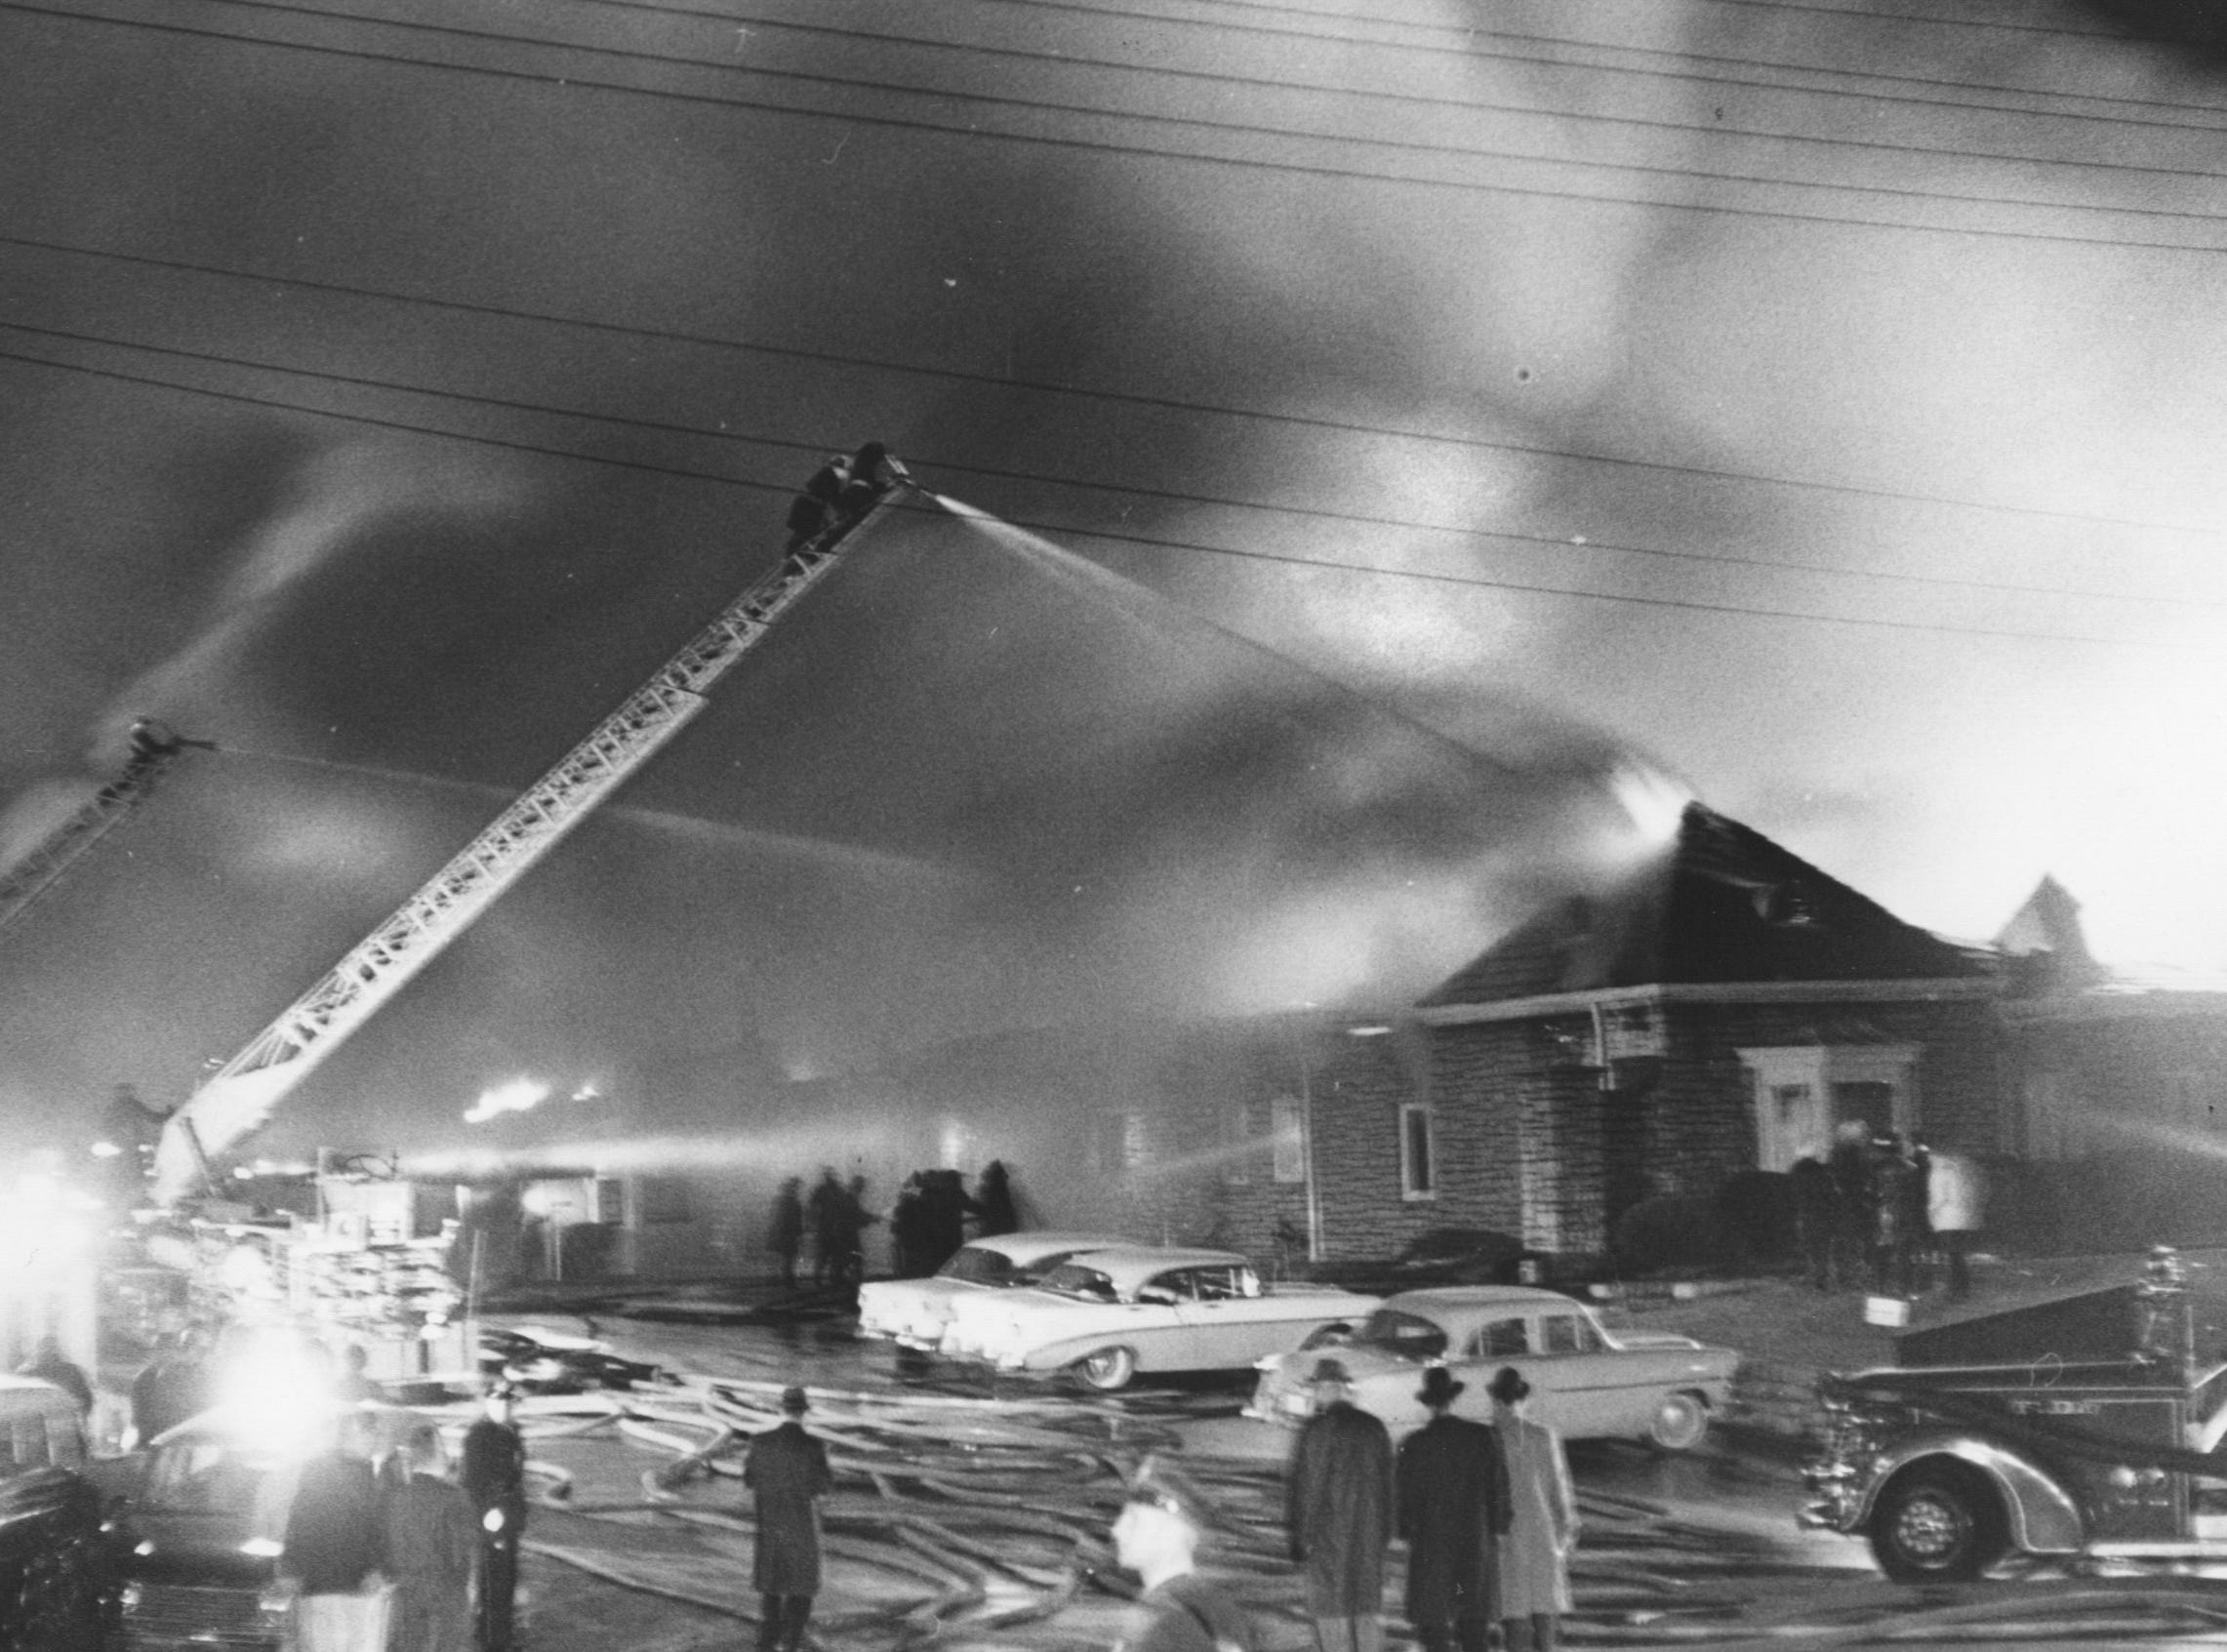 Three firemen were killed while battling the fire at the Parkmoor bowling alley.